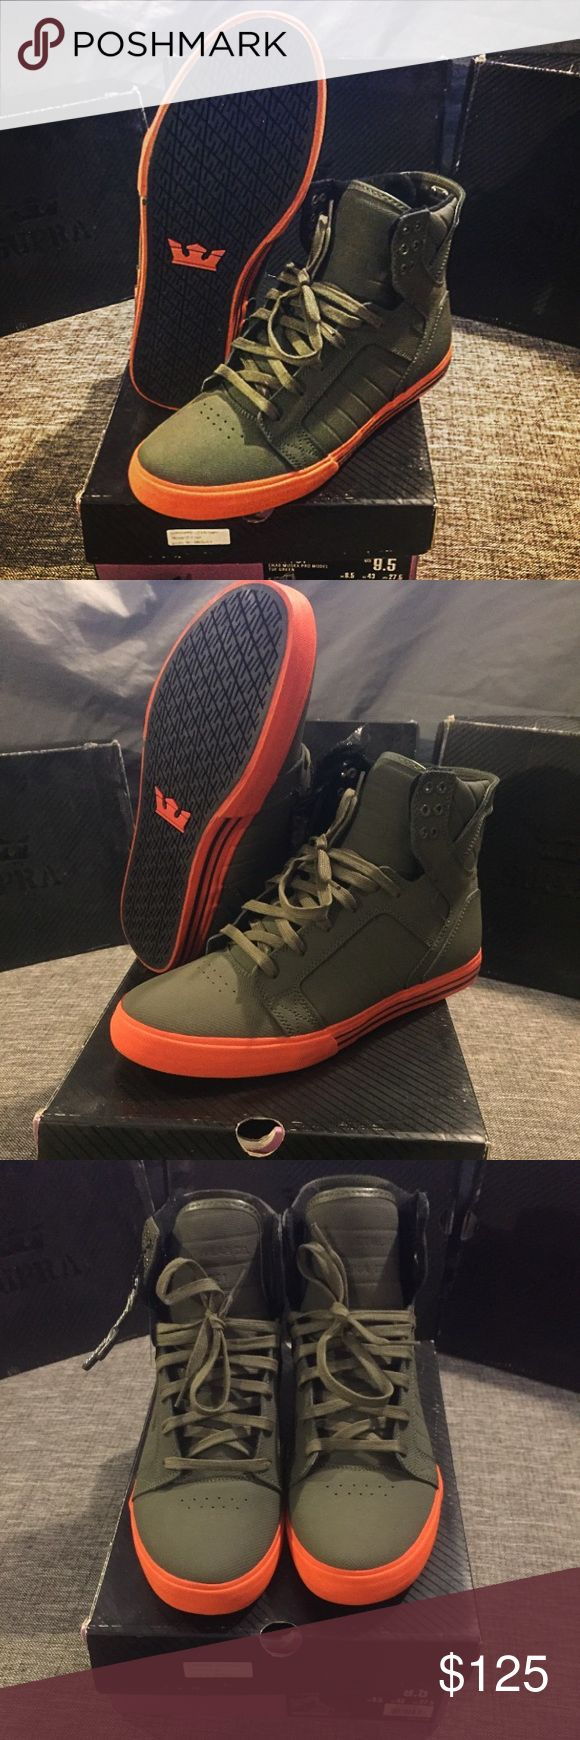 Supra Skytop Chad Muska Shoes, Size 9.5 Extremely rare authentic men's Supra Skytop Chad Muska Pro Model-Tufgreen. Army green shoes with neon orange. Tried on but never worn. Box and extra laces included. Size 9.5. Supra Shoes Sneakers